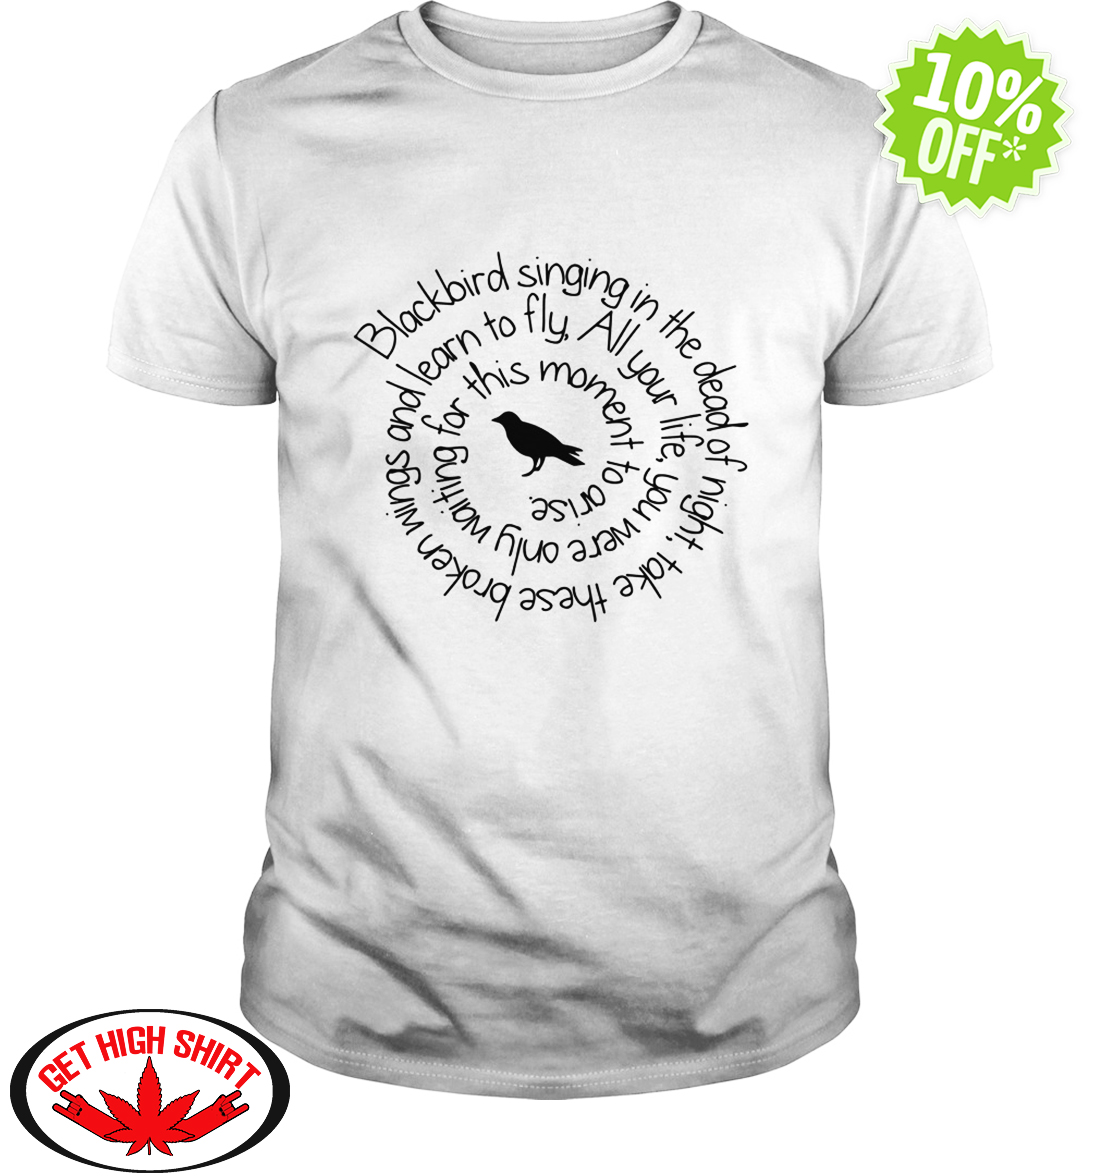 b8c53e51a2 Top sale) Blackbird singing in the dead of night shirt